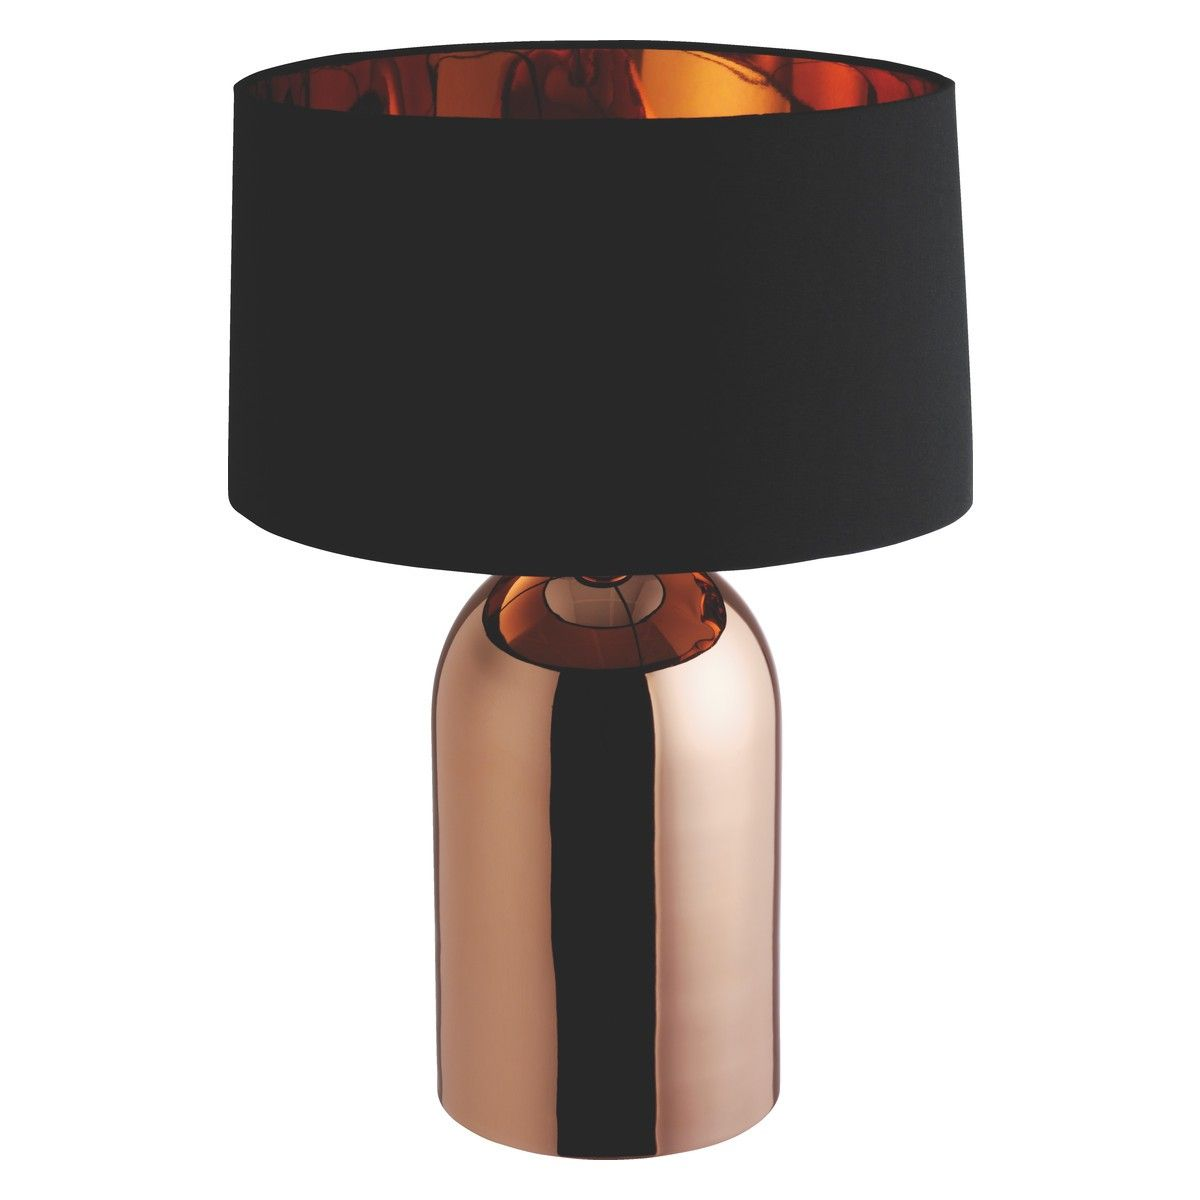 Hallie Copper Table Lamp With Black And Copper Shade Shewolf Copper Table Lamp Copper Lamps Copper Table